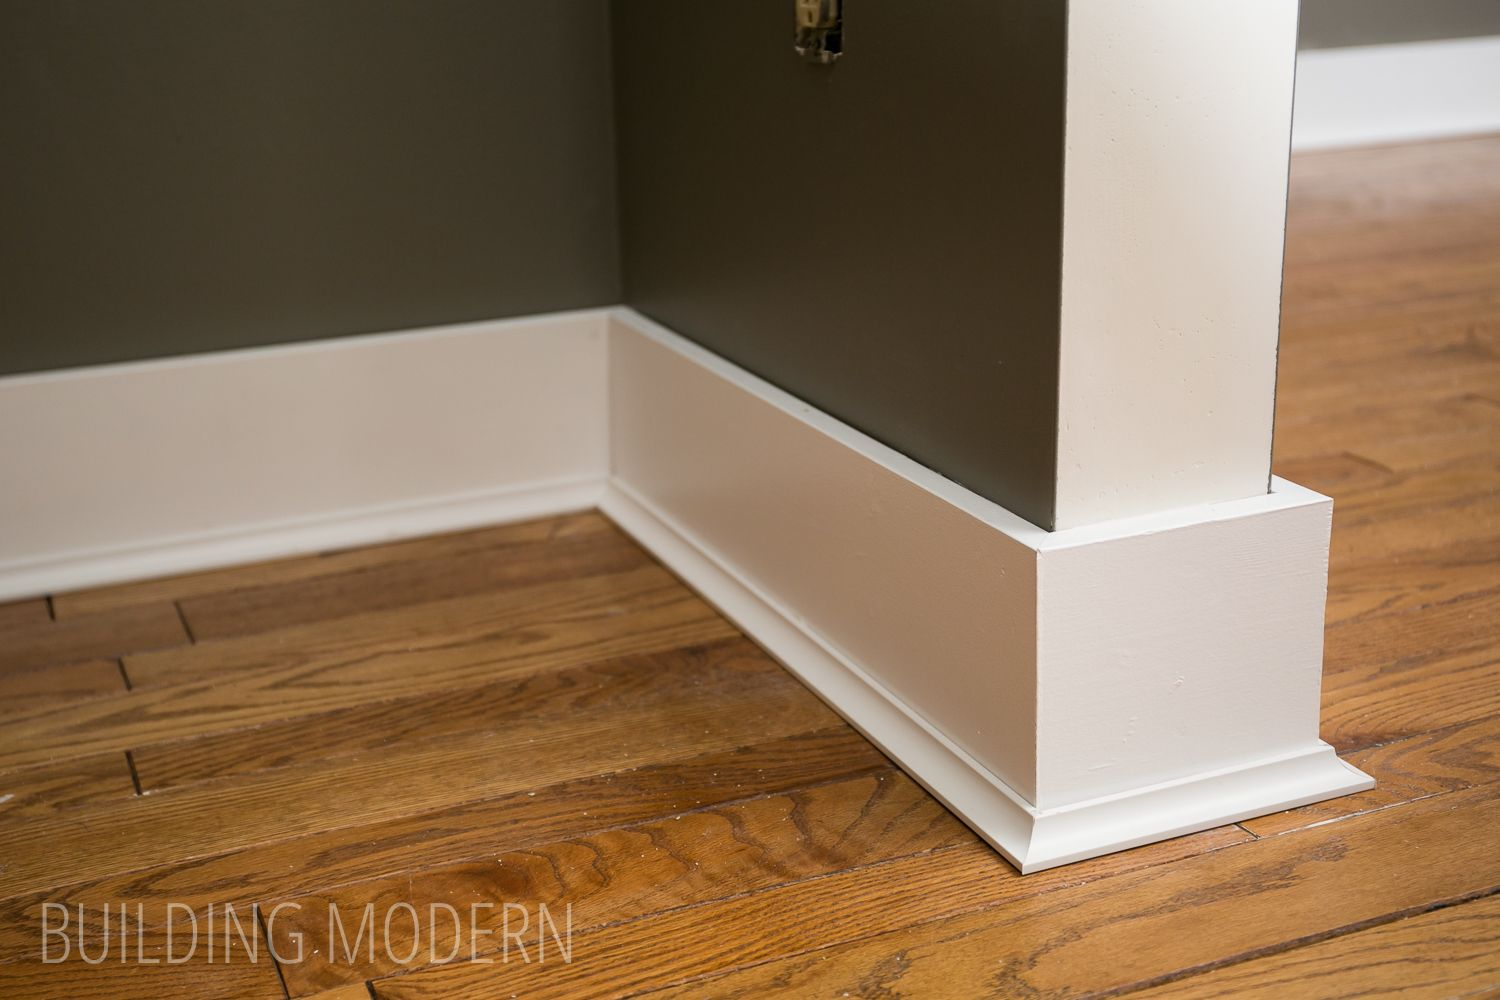 Diy Rustic Baseboard Trim Ideas - Year of Clean Water